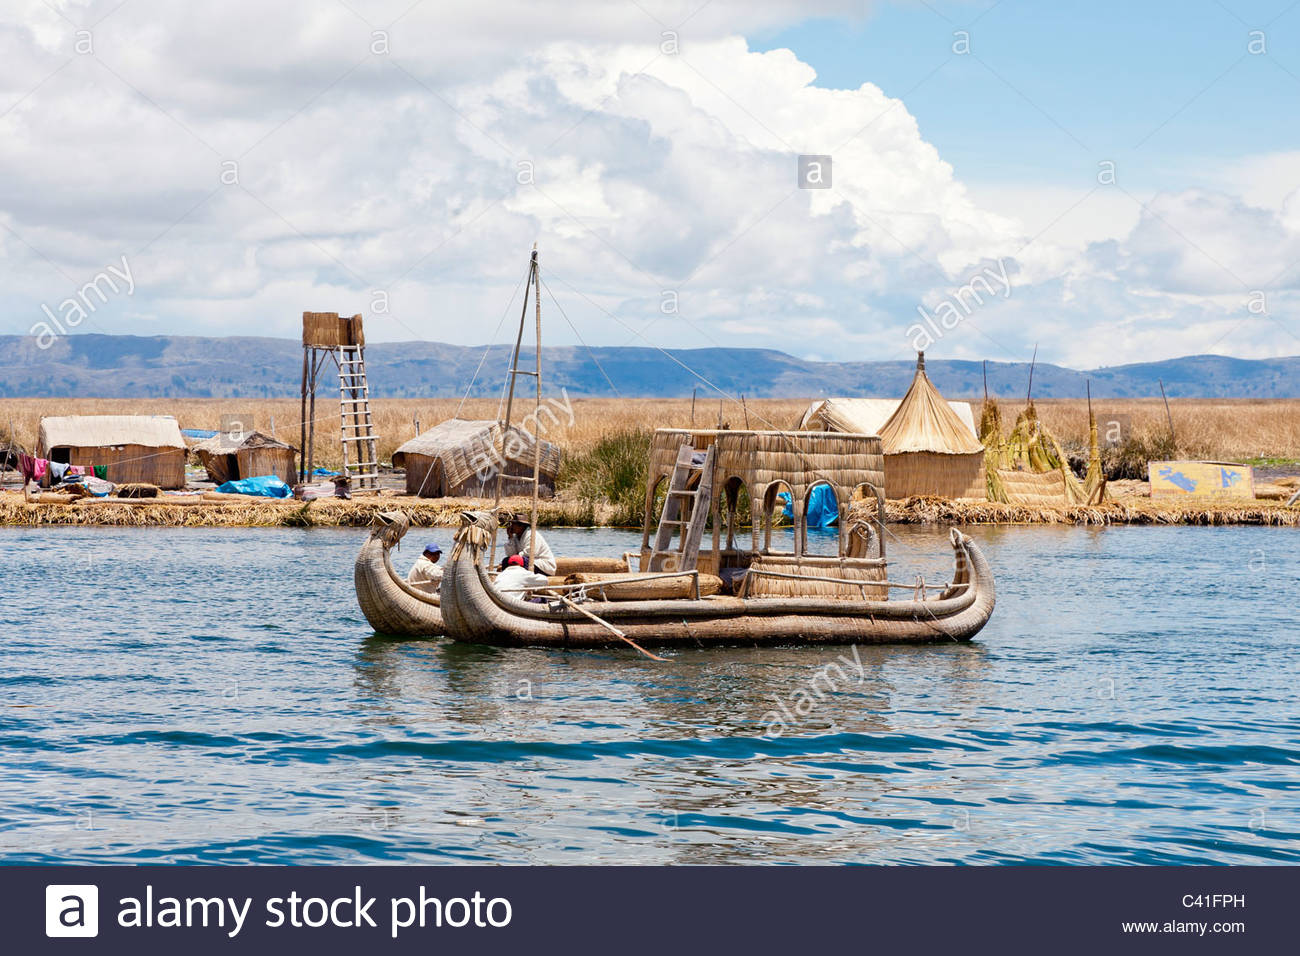 A traditional totora reed boat at the Uros Floating Islands, Lake Titicaca, near Puno, Peru. - Stock Image